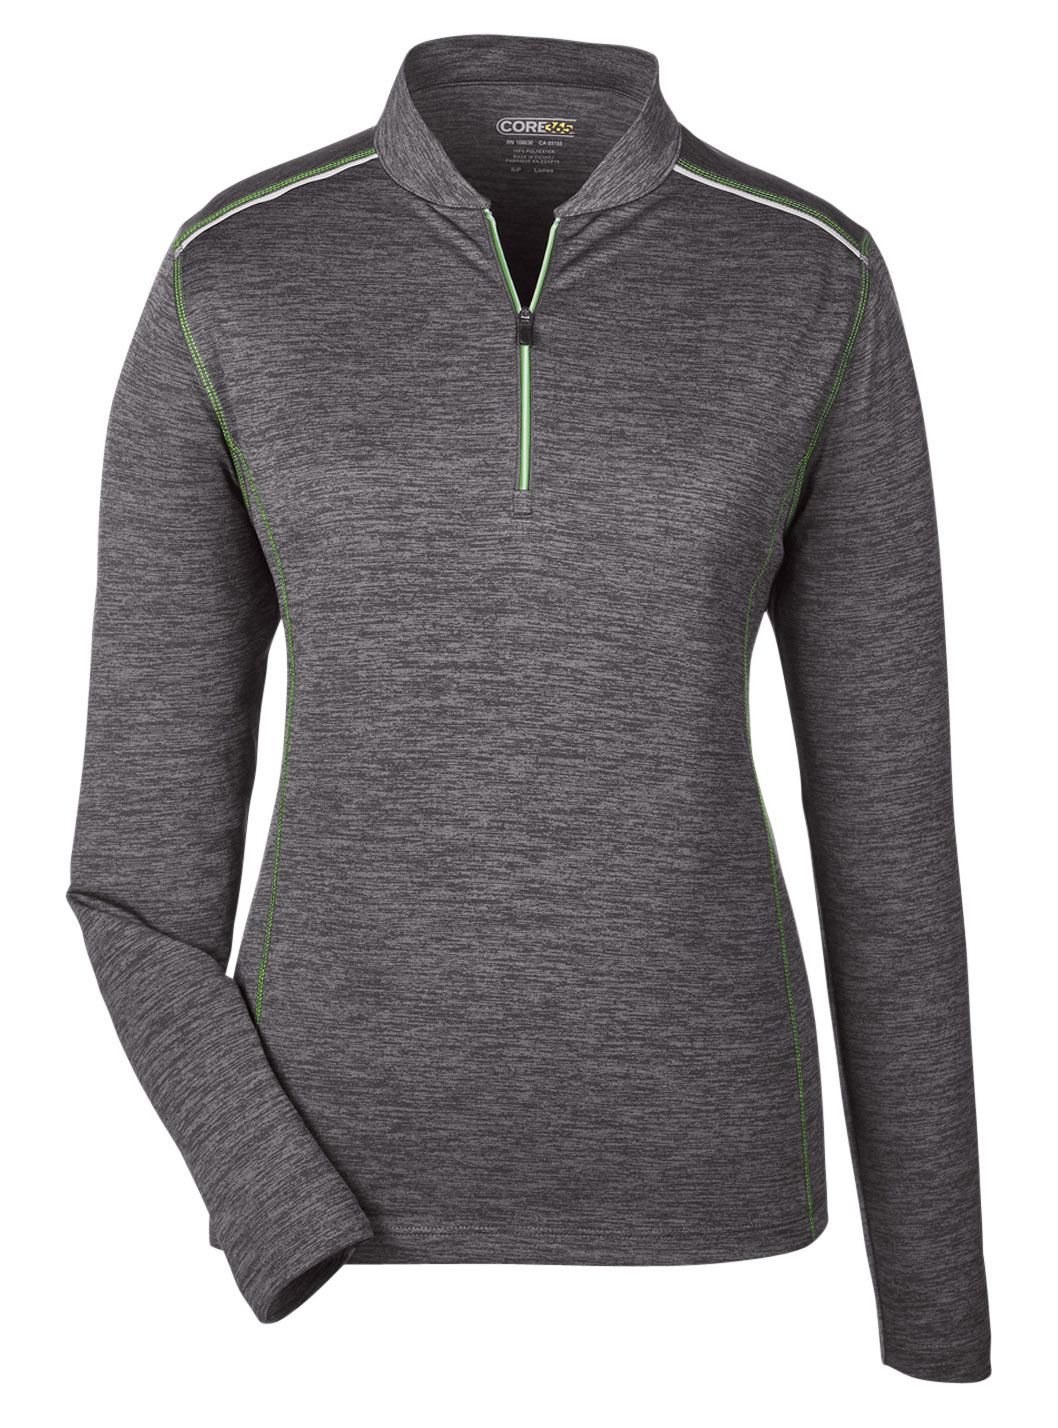 Ash City Core 365 Womens Kinetic Performance 1/4-Zip